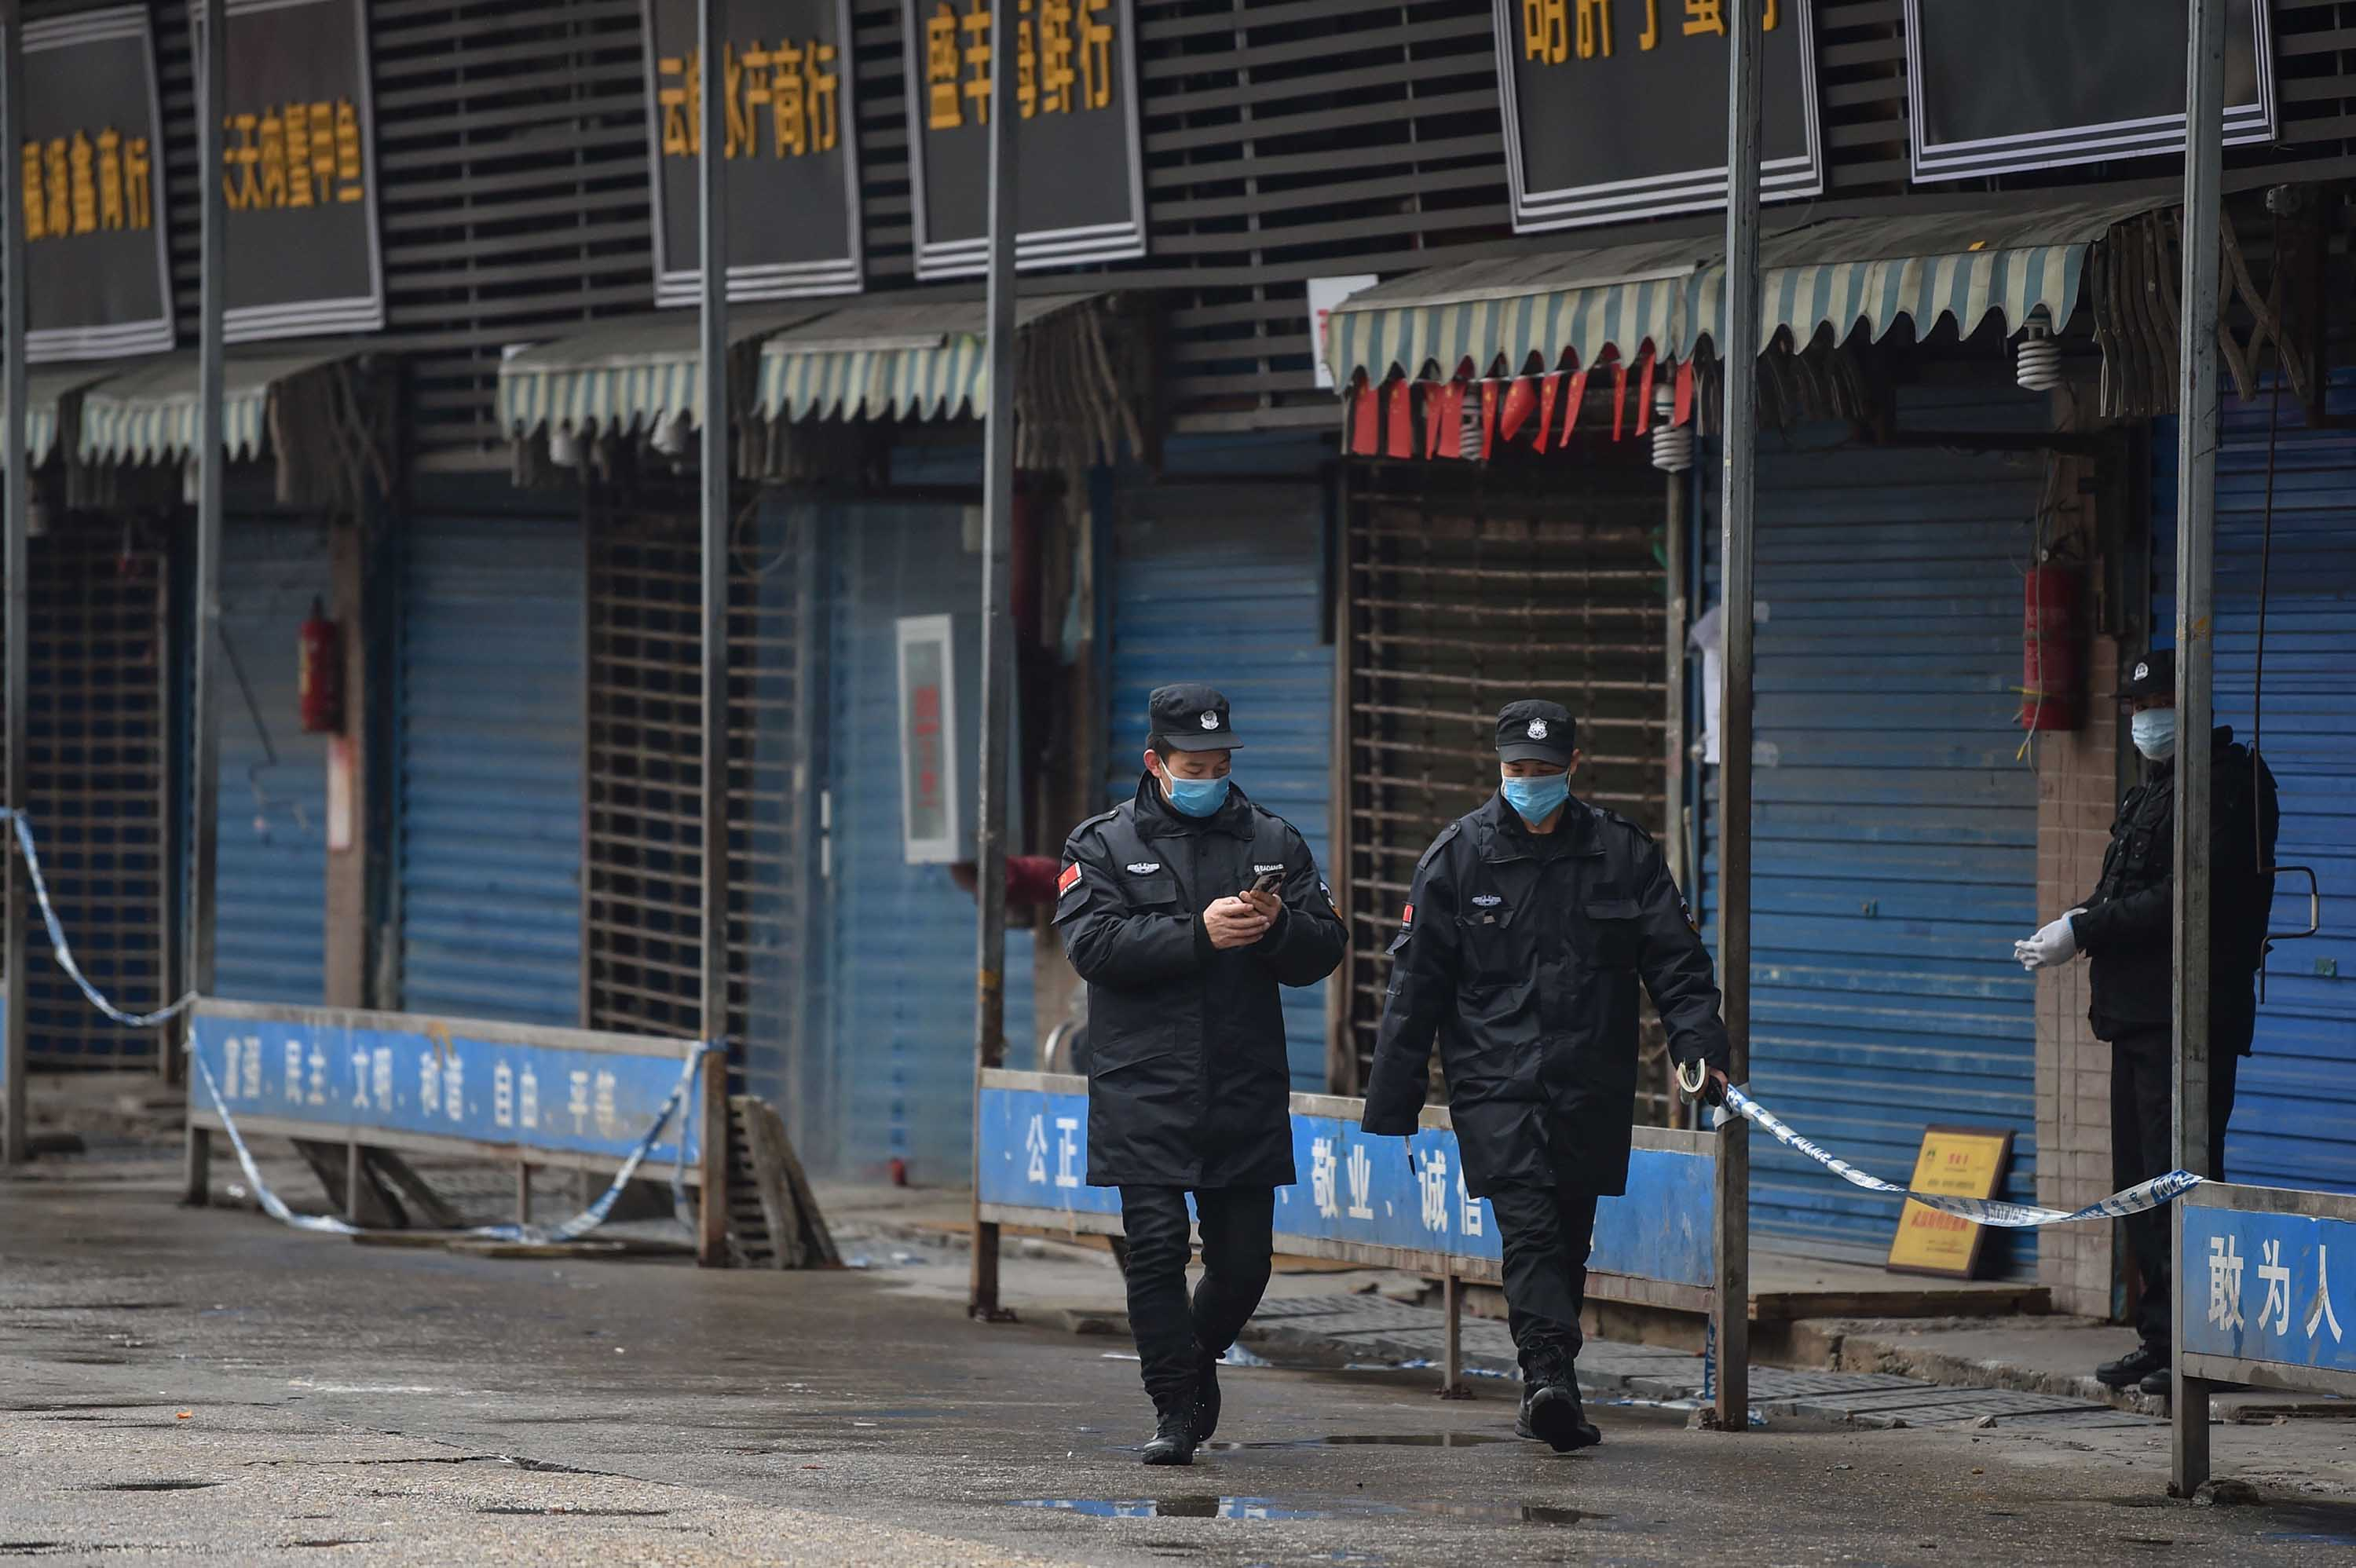 Guards patrol on January 24 outside the Huanan Seafood Wholesale Market in Wuhan, believed to be the source of the virus.